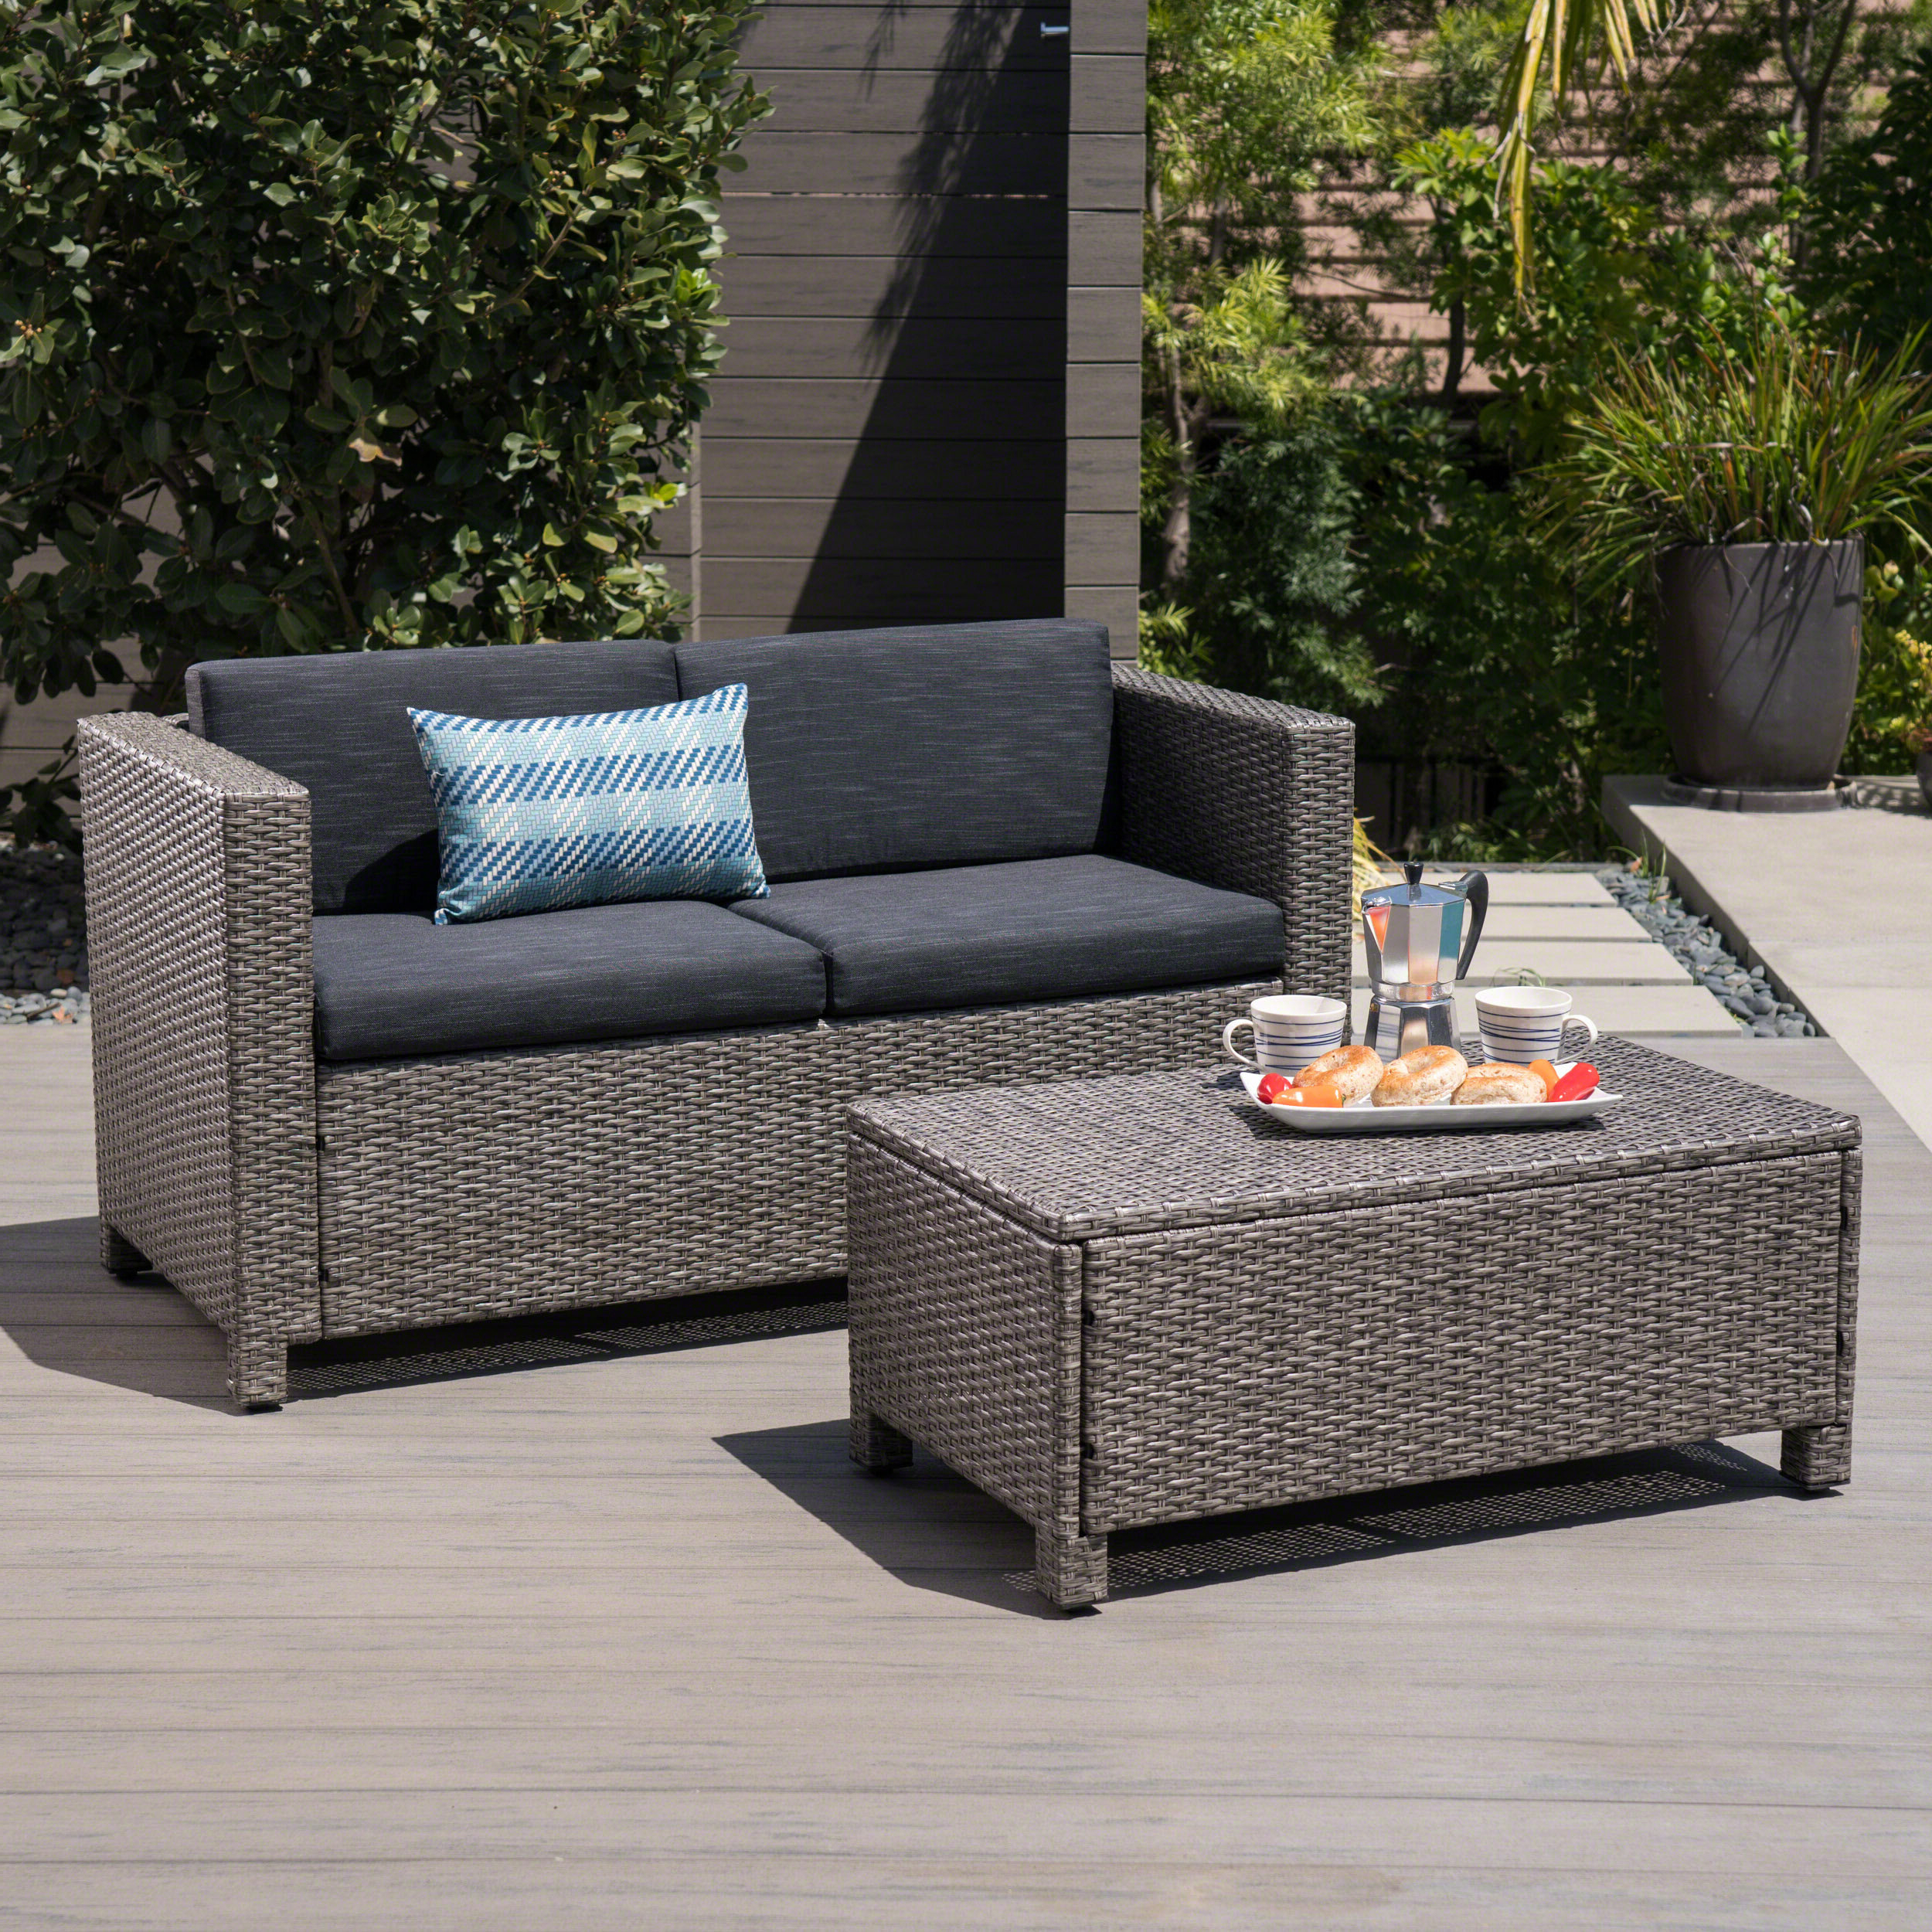 Furst Outdoor Loveseats With Cushions Intended For Best And Newest Furst Outdoor Rattan Loveseat And Table Set With Cushions (View 7 of 25)